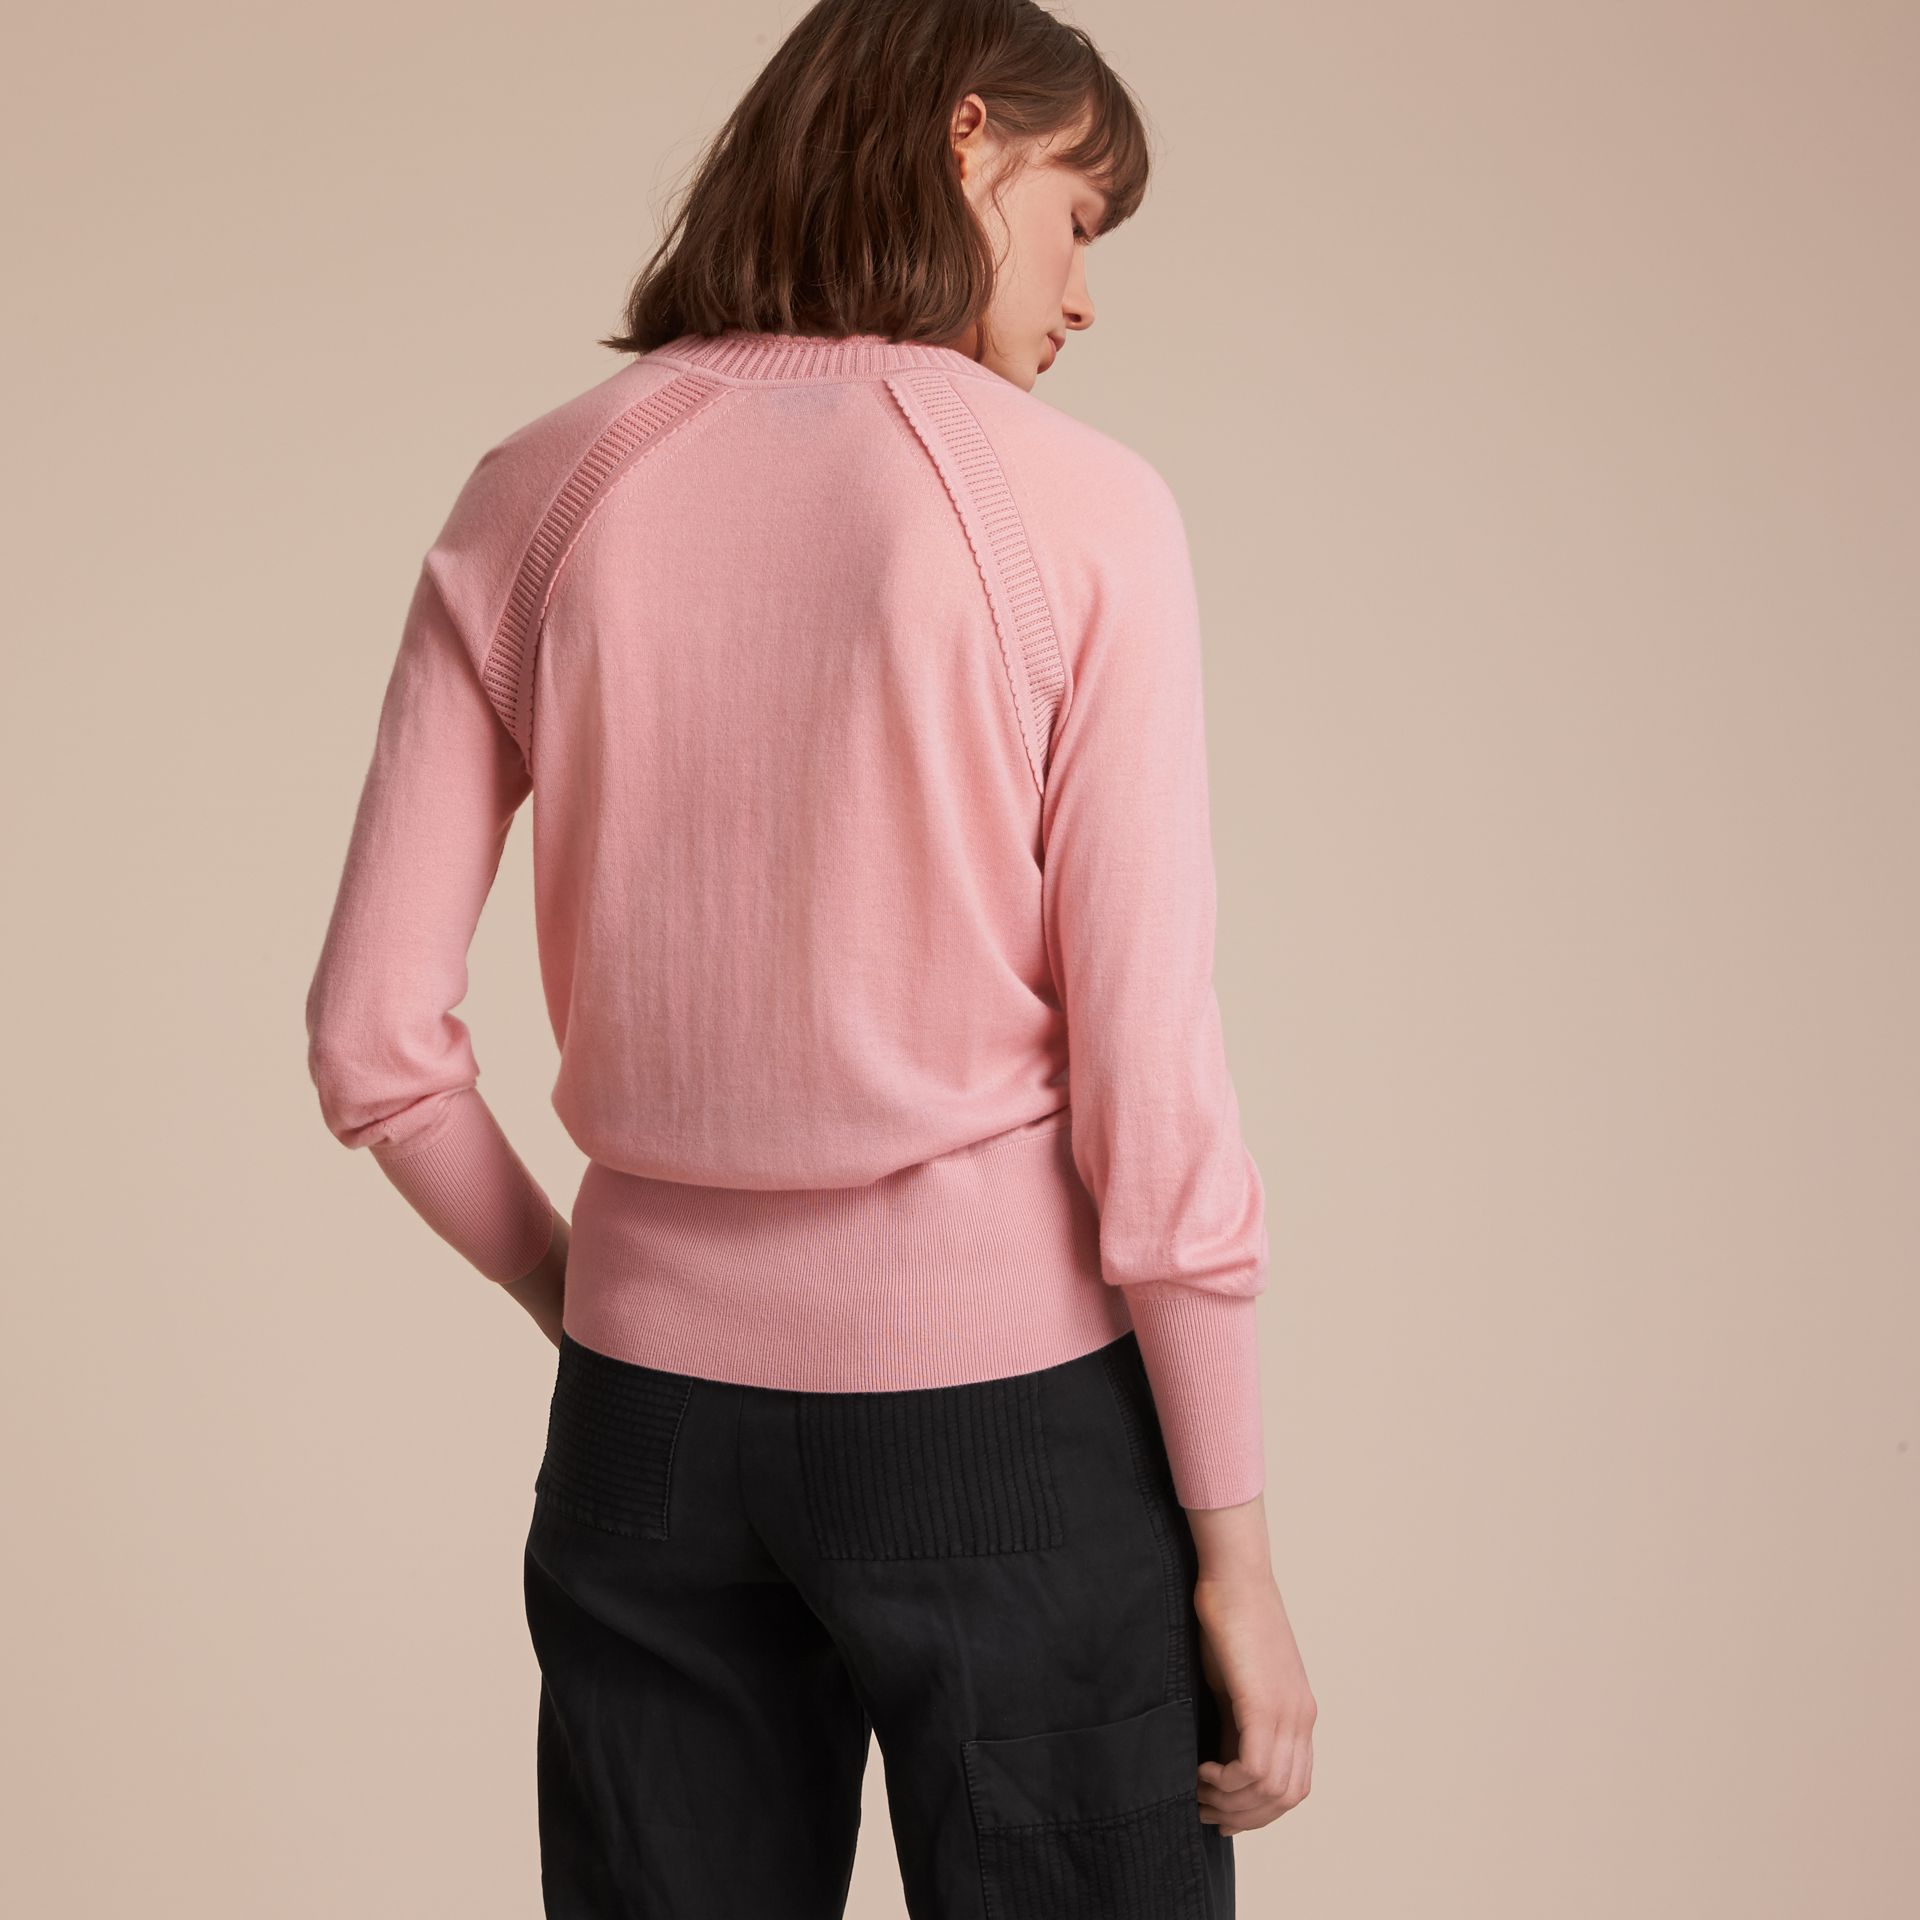 Open-knit Detail Cashmere Crew Neck Sweater in Apricot Pink - Women | Burberry Canada - gallery image 3